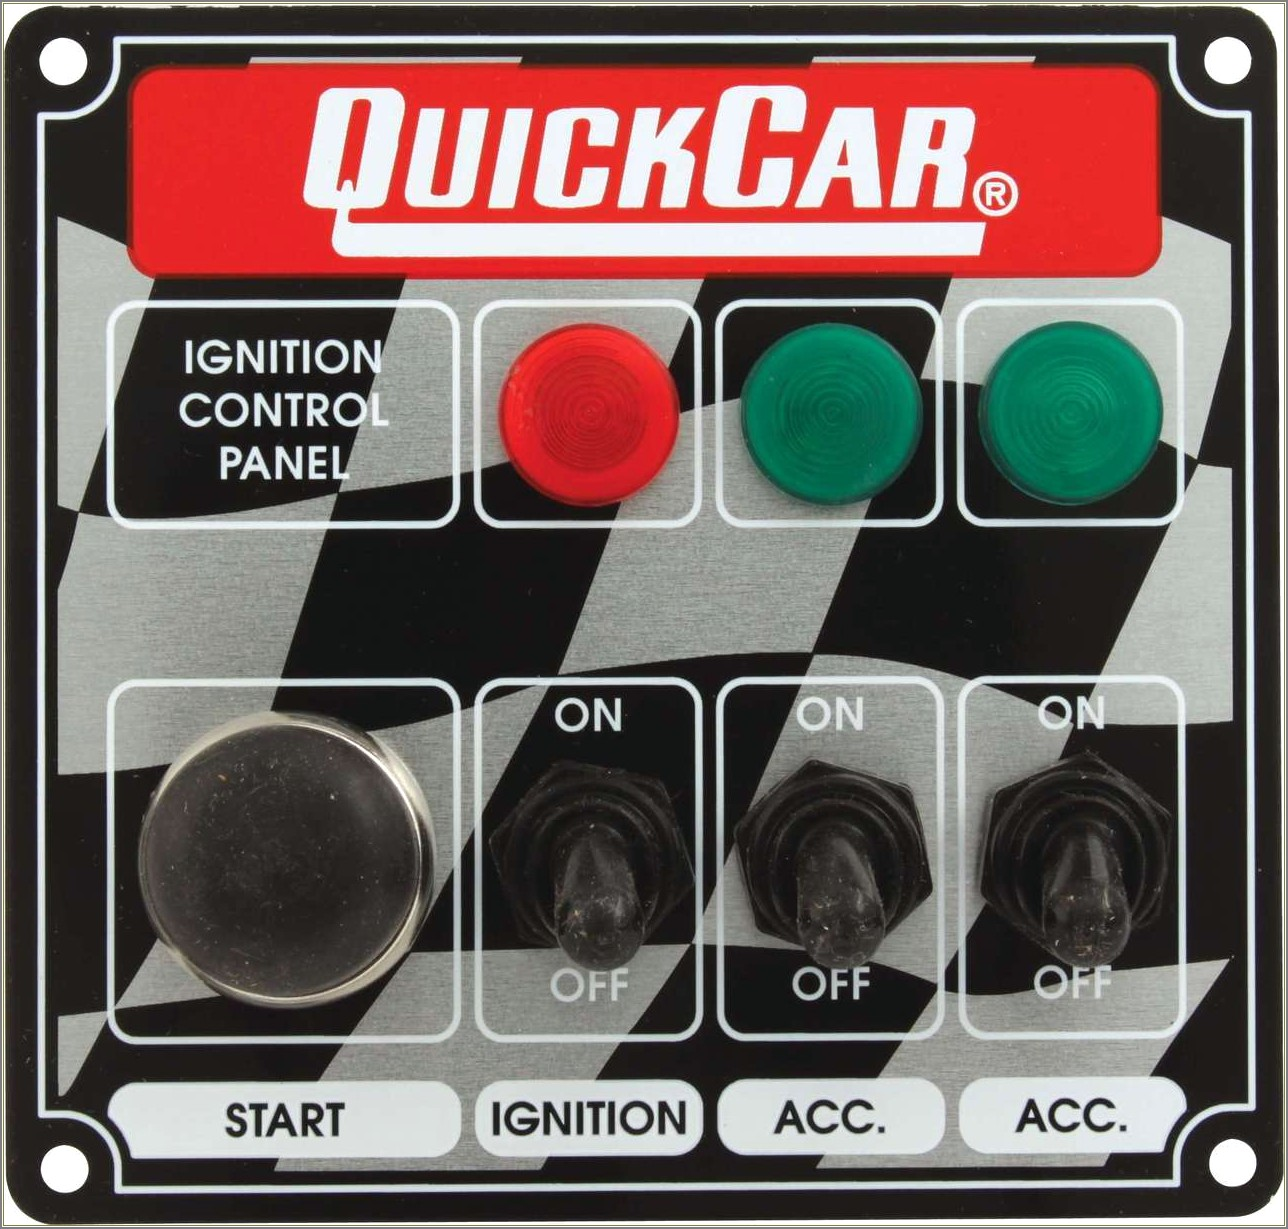 Quick Car Ignition Control Panel Wiring Diagram